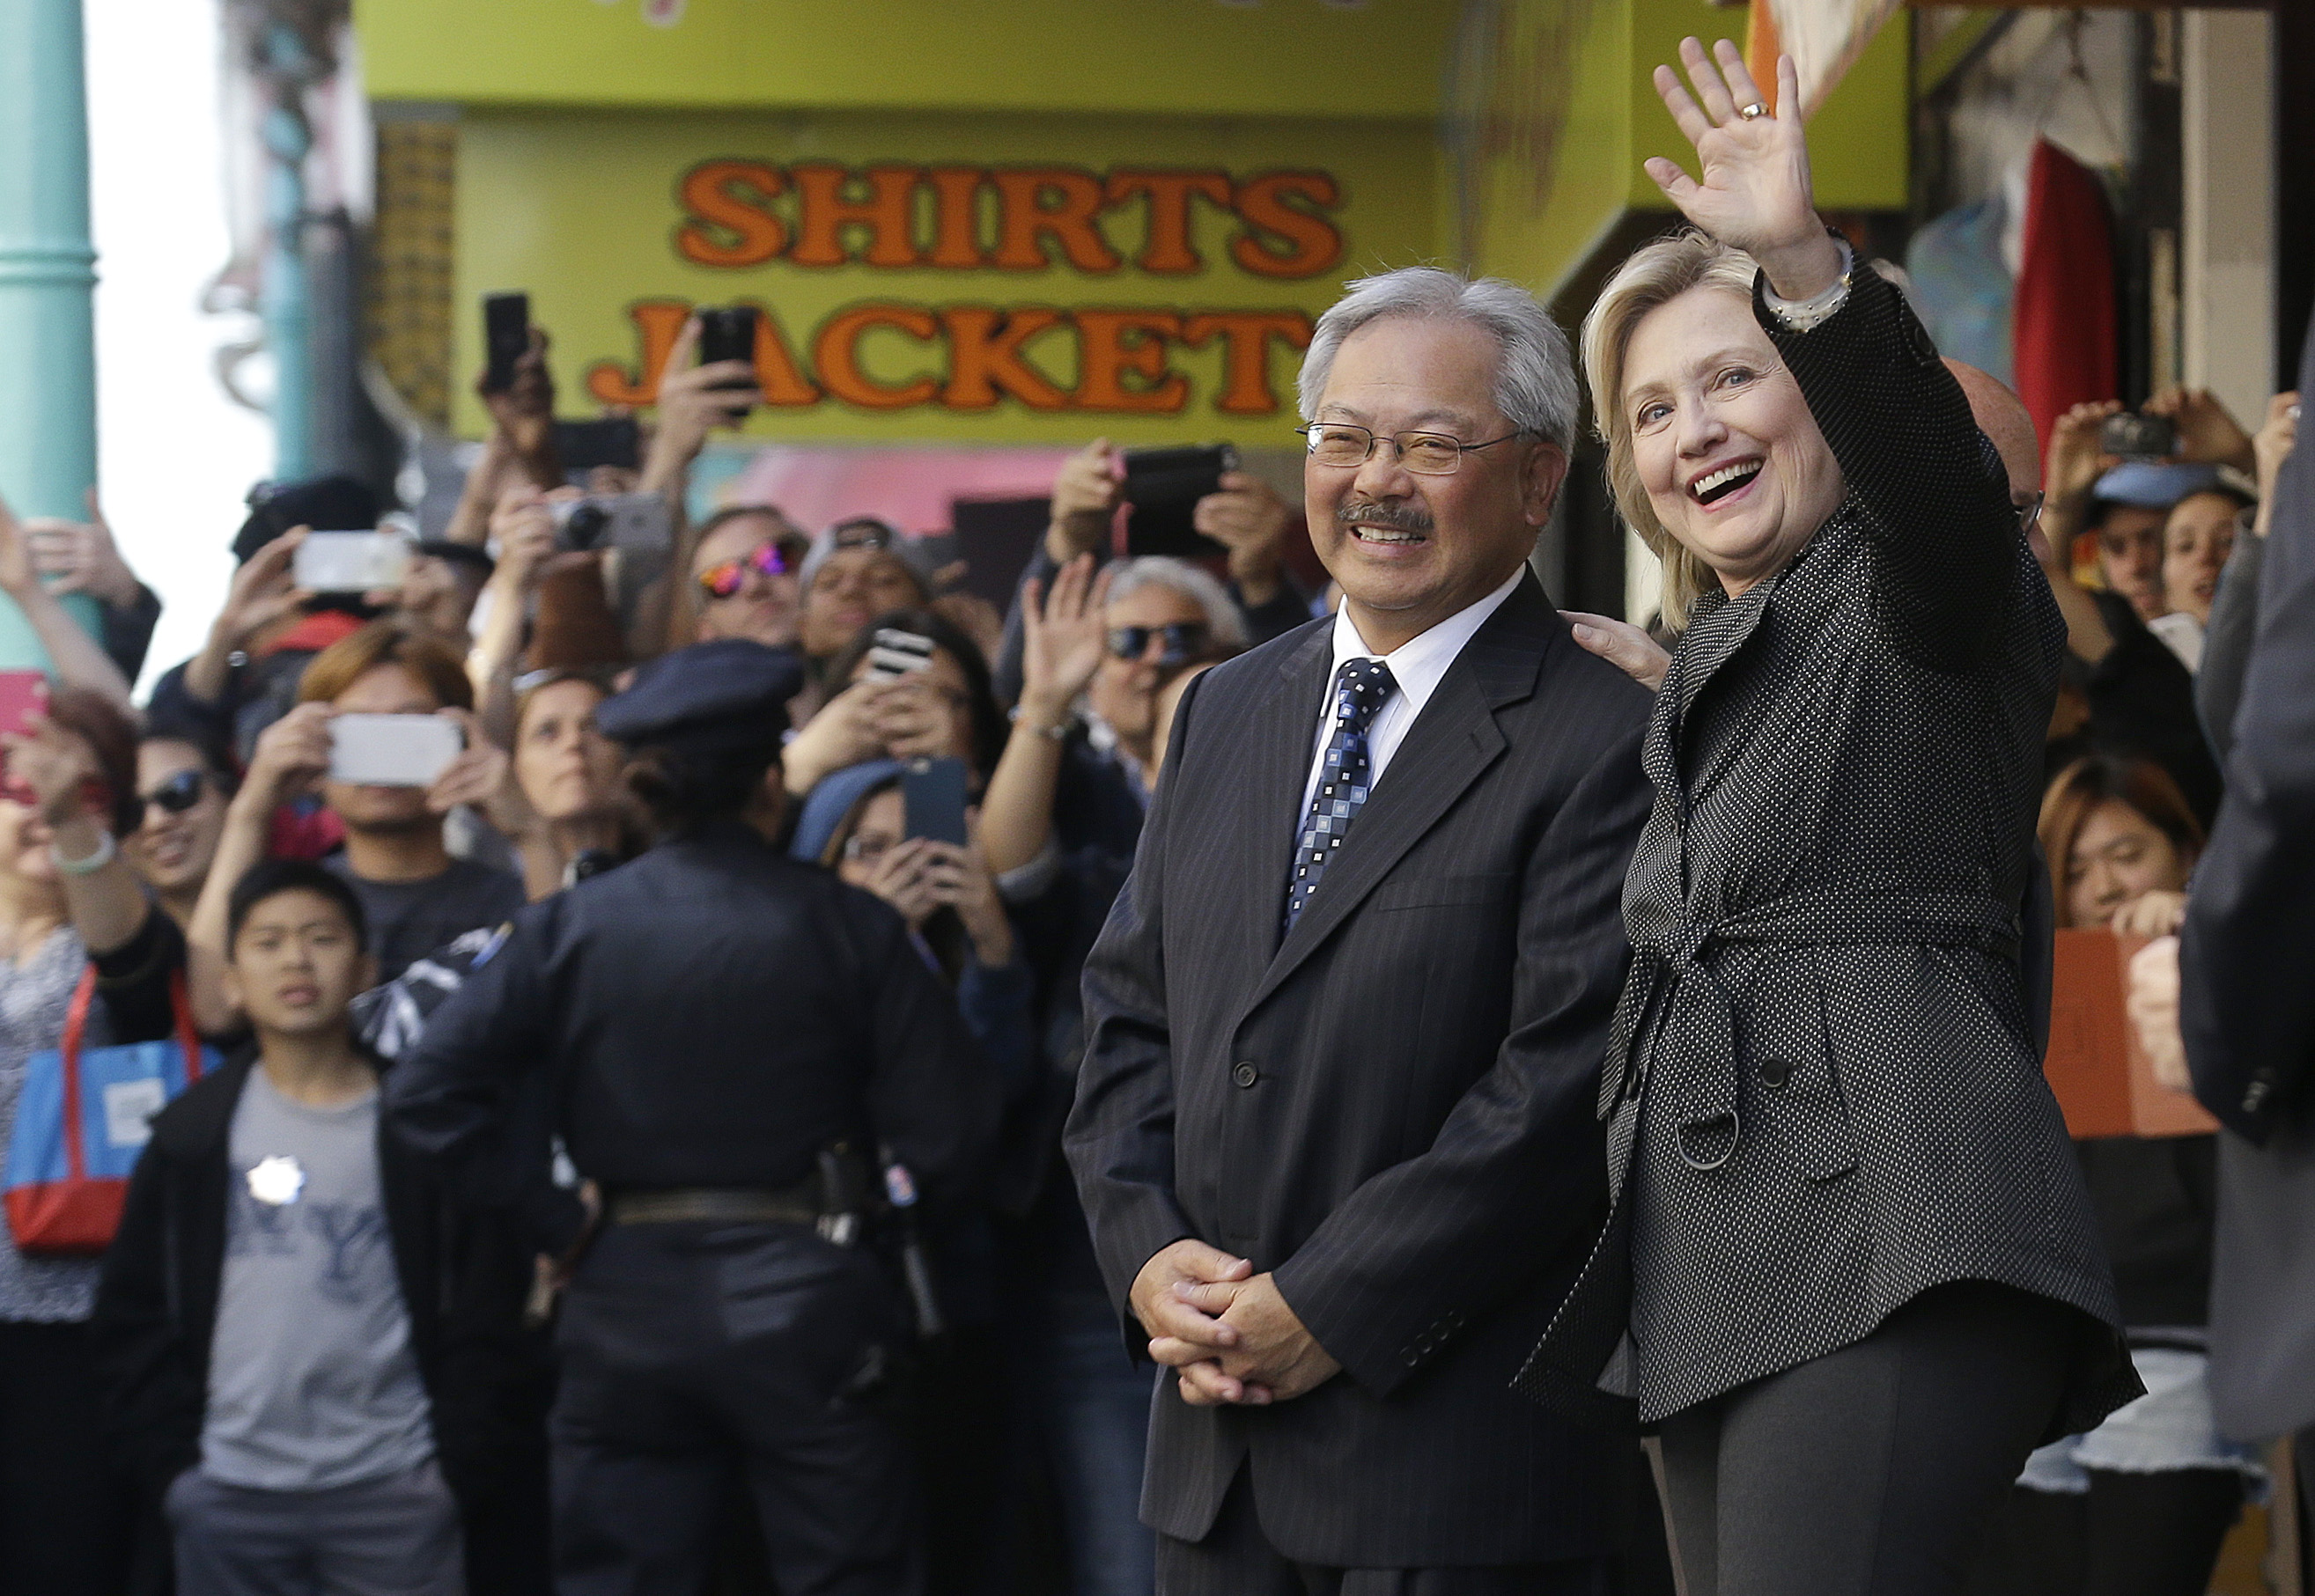 <div class='meta'><div class='origin-logo' data-origin='none'></div><span class='caption-text' data-credit='Jeff Chiu/AP Photo'>Hillary Rodham Clinton, right, waves next to San Francisco Mayor Ed Lee after visiting Red Blossom Tea Company in Chinatown in San Francisco, Wednesday, May 6, 2015.</span></div>